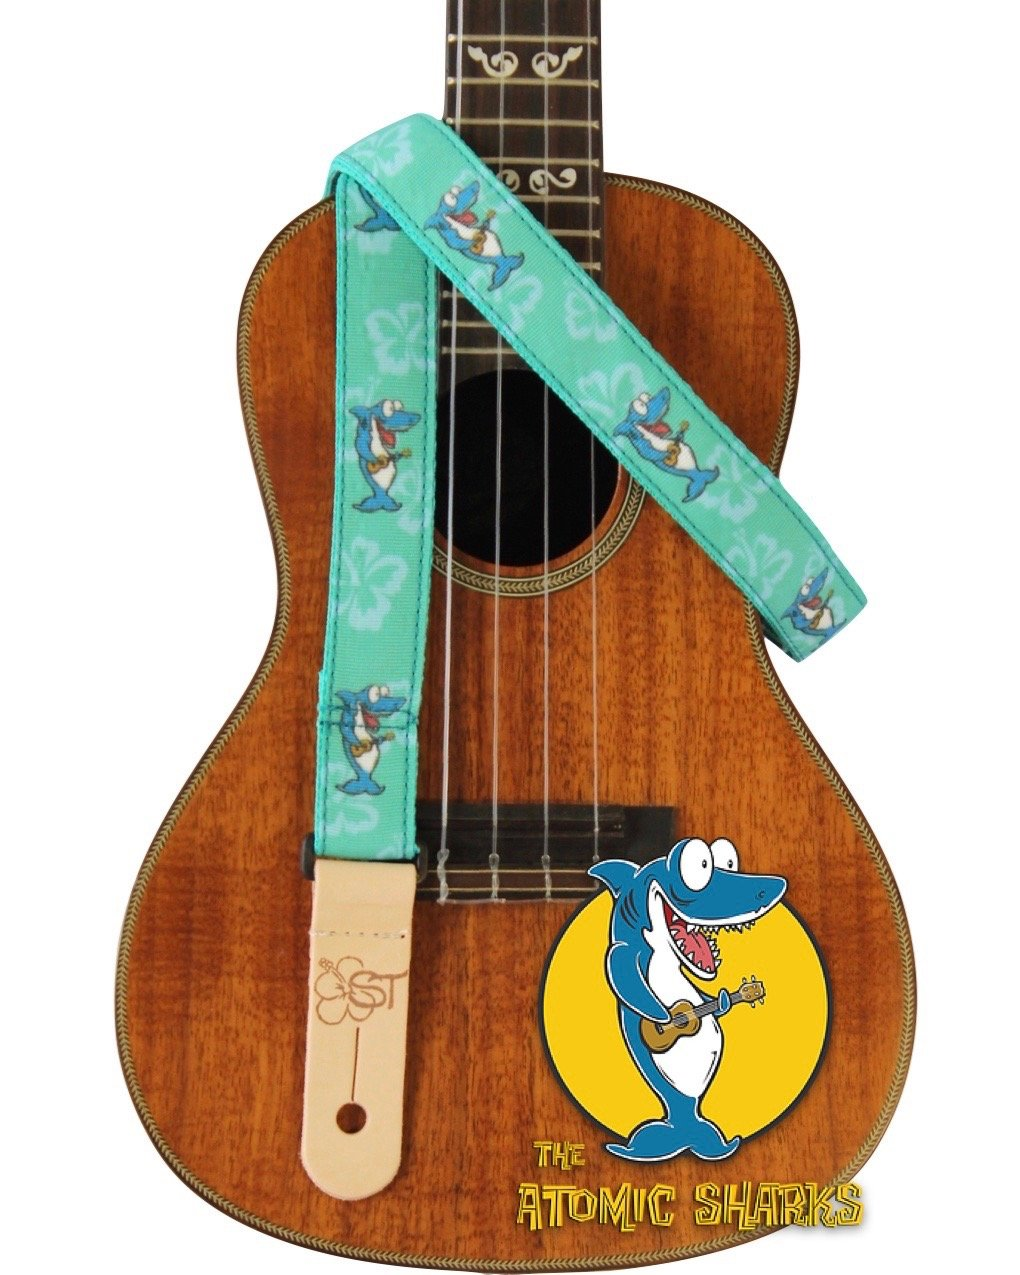 ST 1 Atomic Sharks Ukulele Strap - Teal